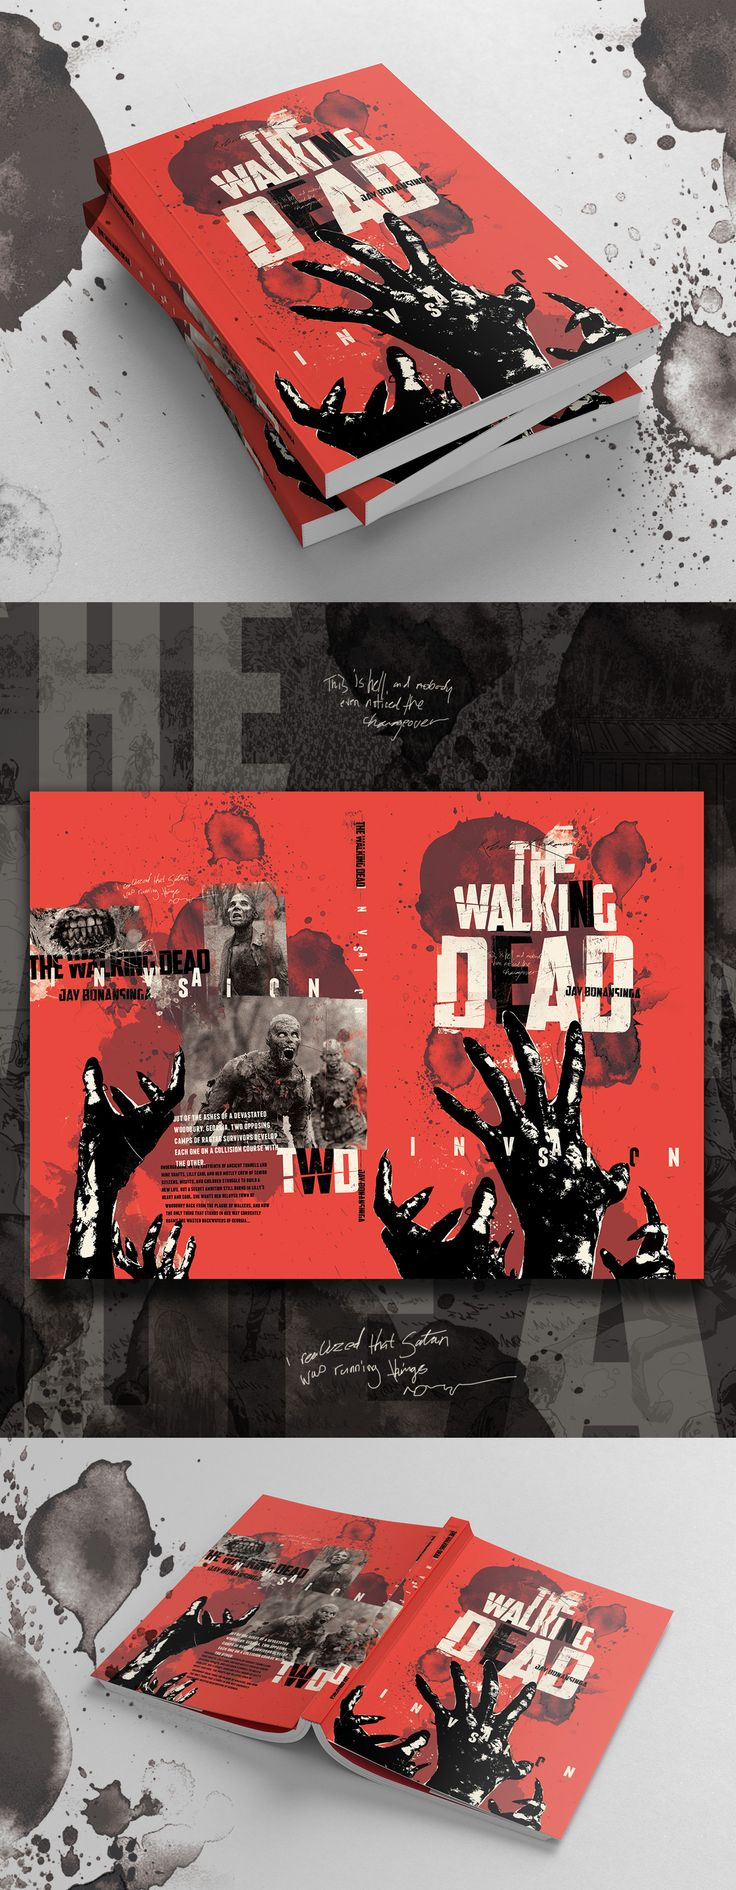 I love reading The Walking Dead novels. So raw and gritty. I decided, after I completed this edition, it needed a redesign. My inspiration really comes from the constant overwhelming pursuit of the dead swarm and my love for deconstructive design. #bookdesign #thewalkingdead #walkers #graphicnovel #deconstructivedesign #bookcover